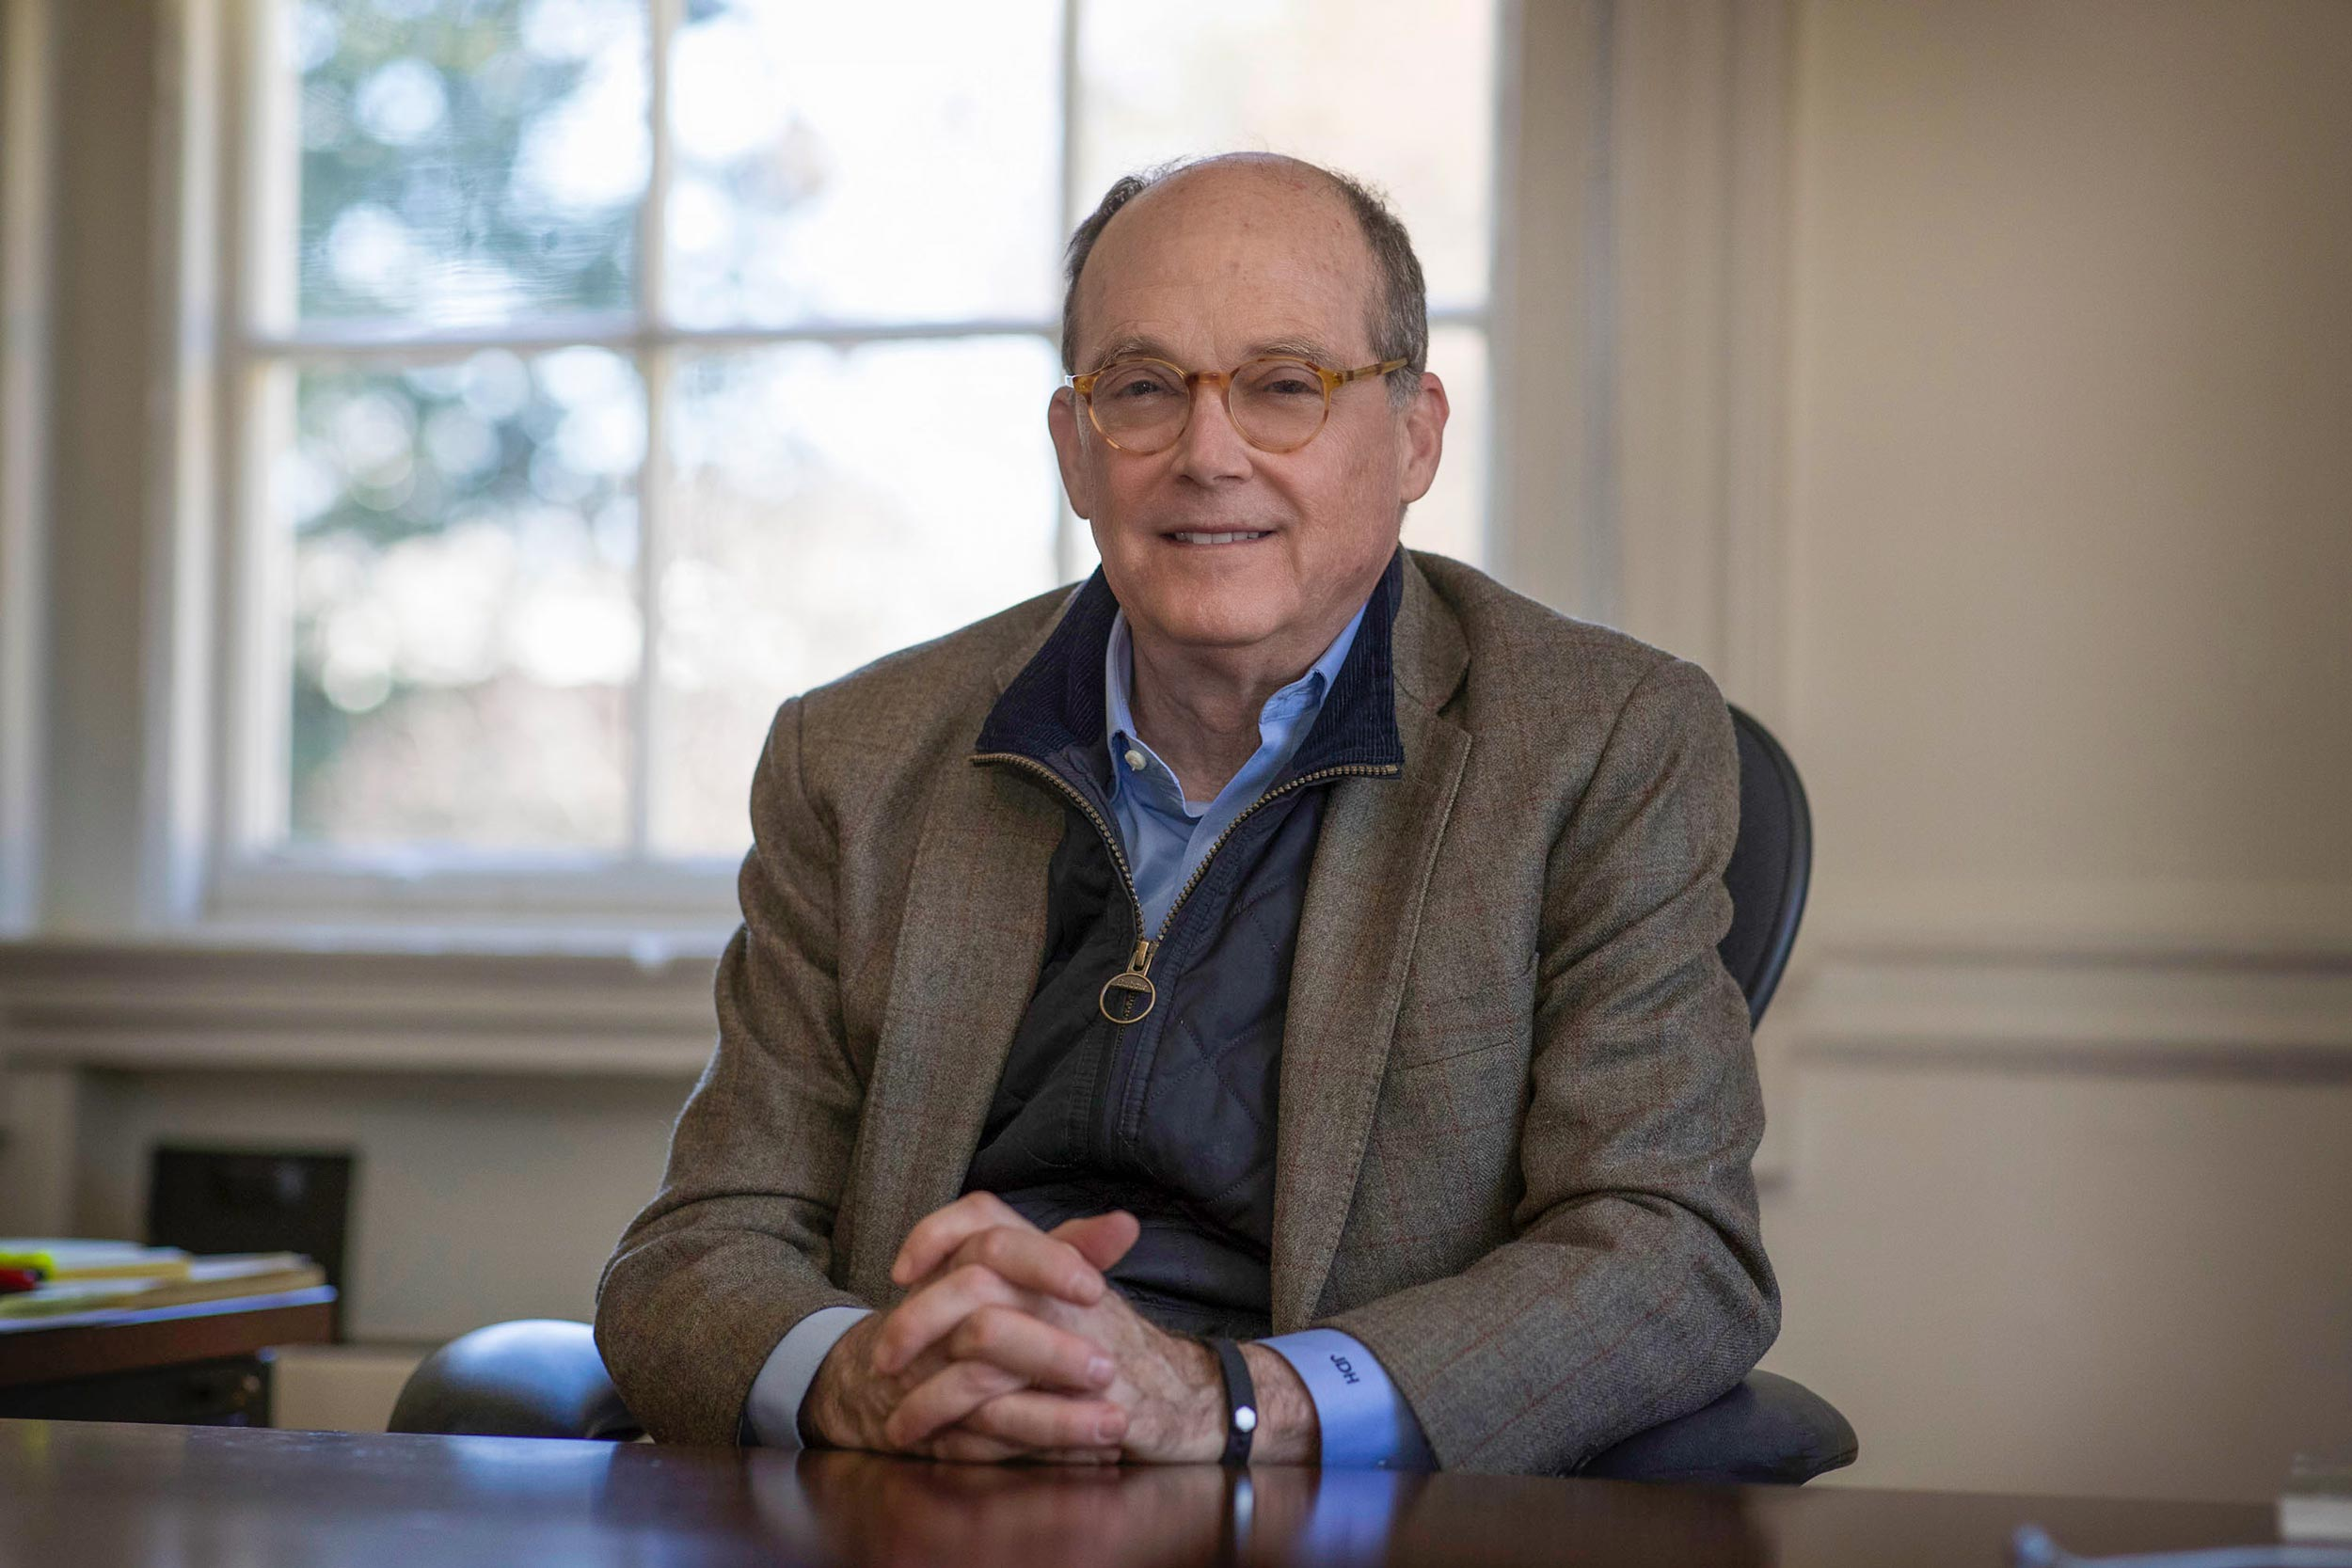 James Davison Hunter is a historical and cultural sociologist concerned with the problems of moral order in the midst of political and cultural change in American life.